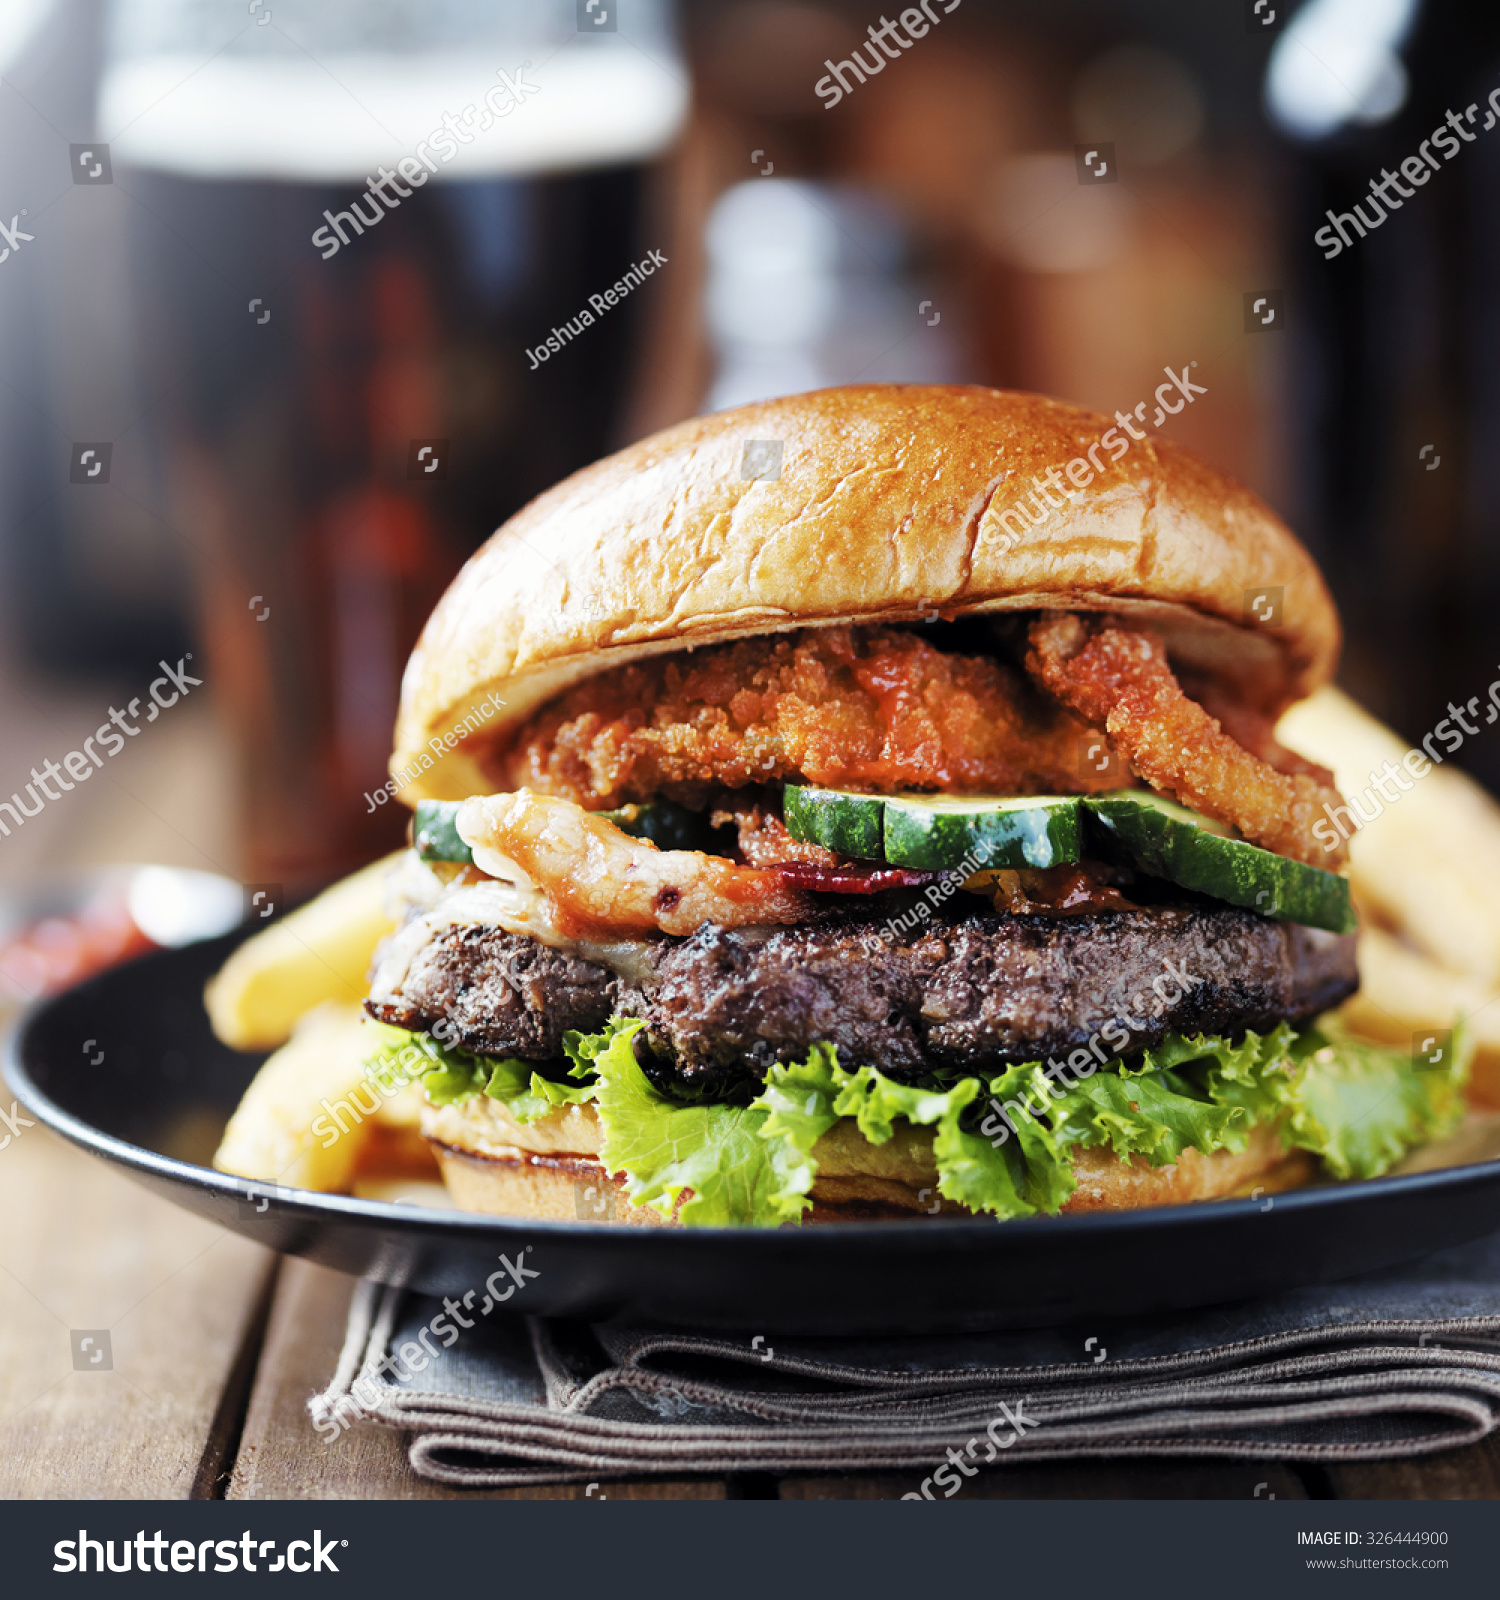 onion ring bacon barbecue burger fries 326444900. Black Bedroom Furniture Sets. Home Design Ideas